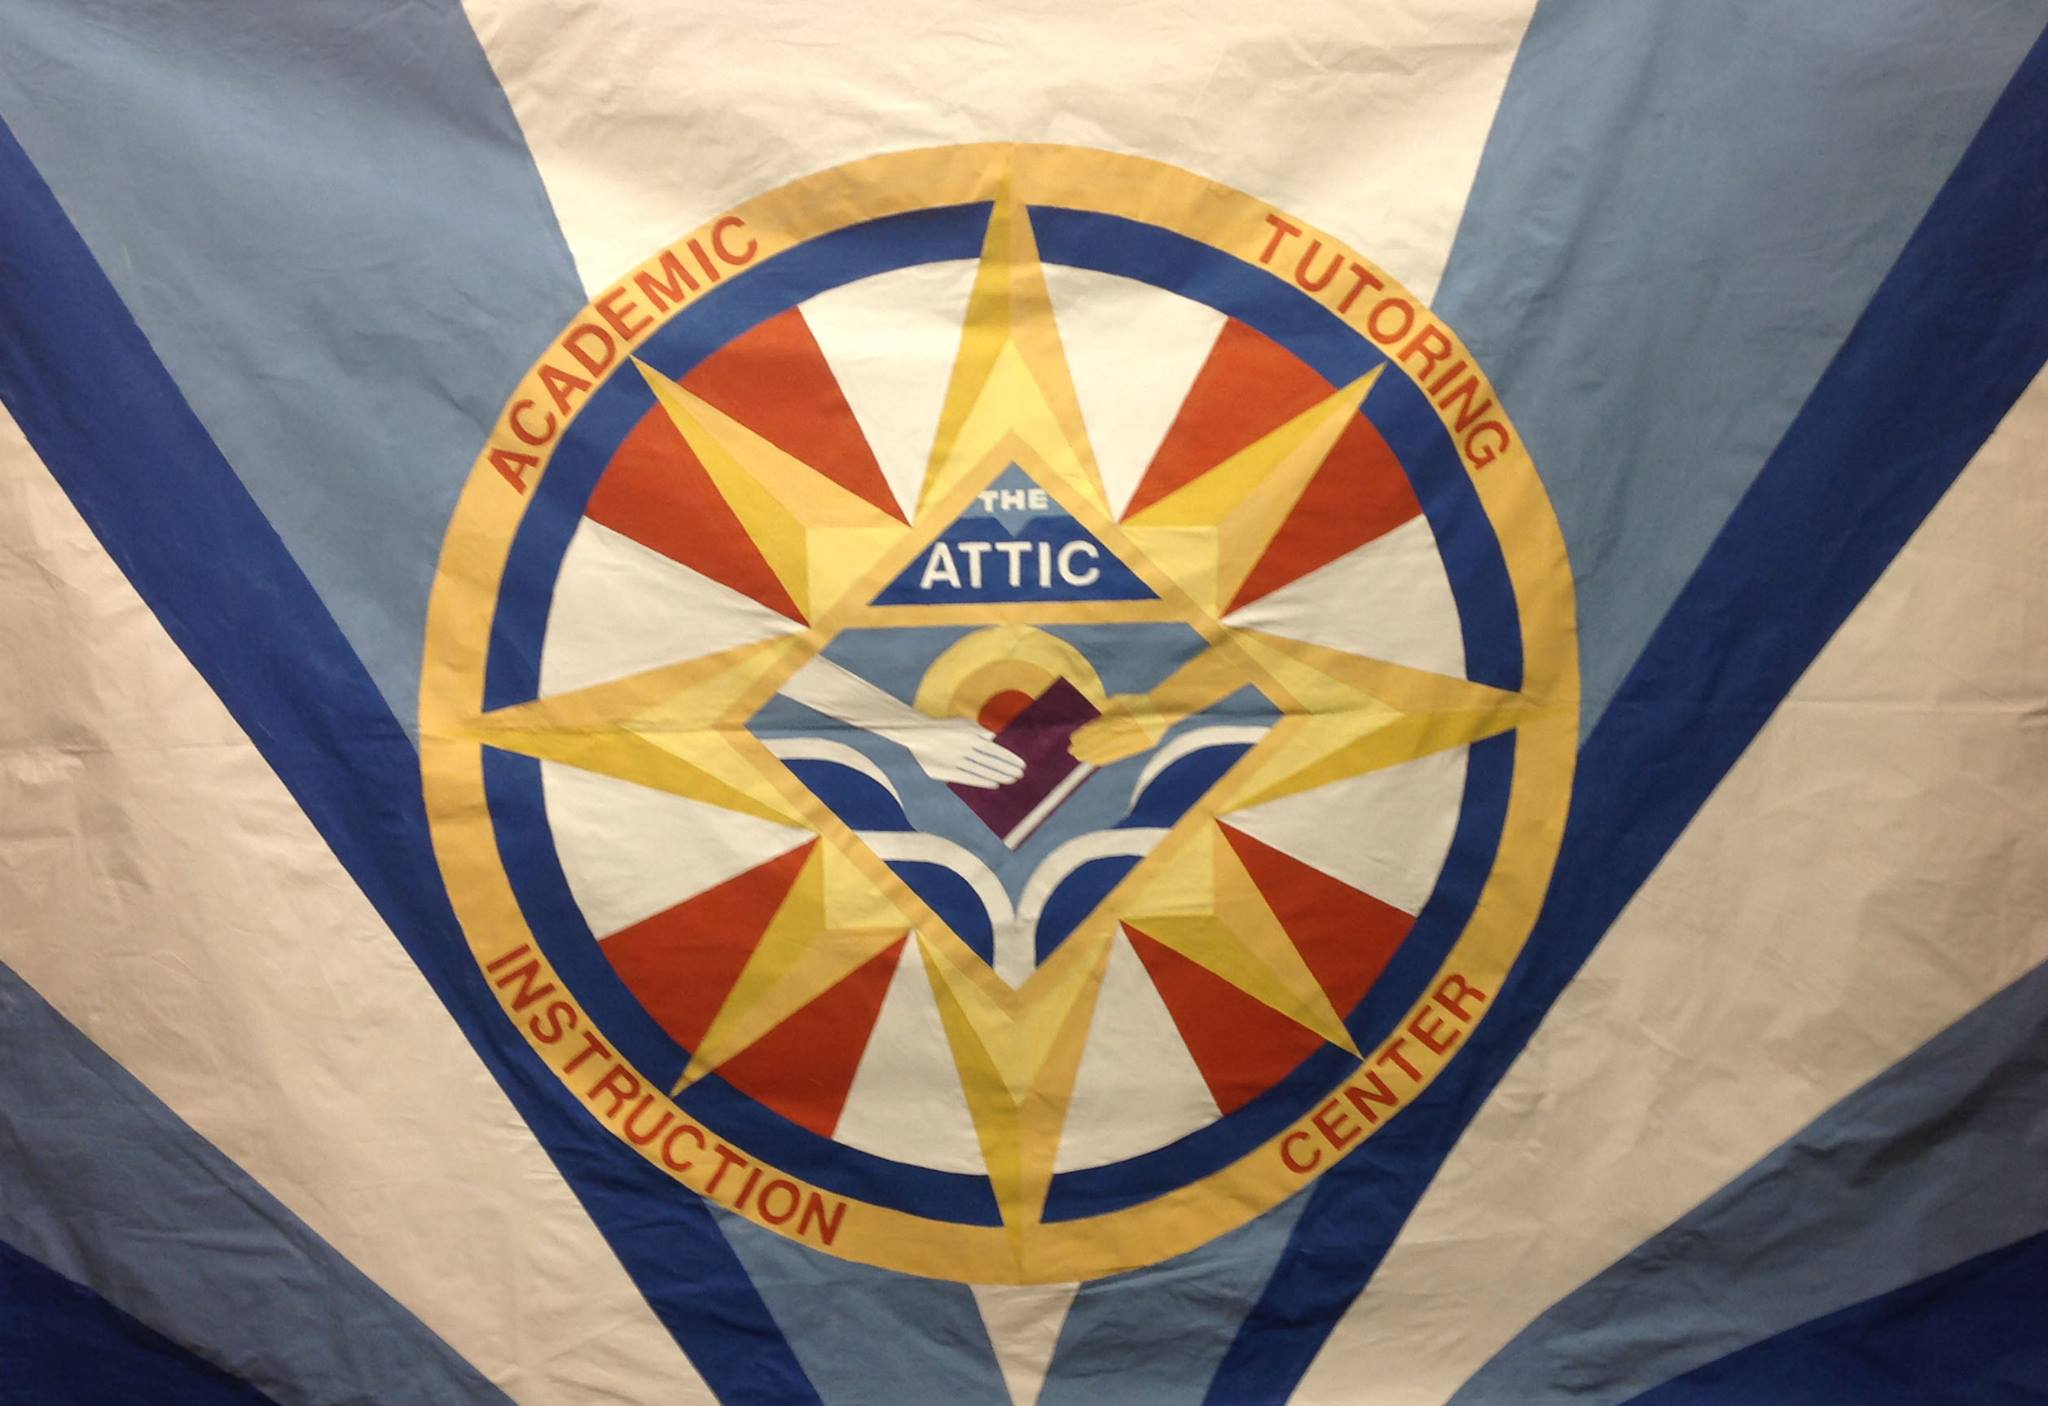 Photograph of the Attic banner